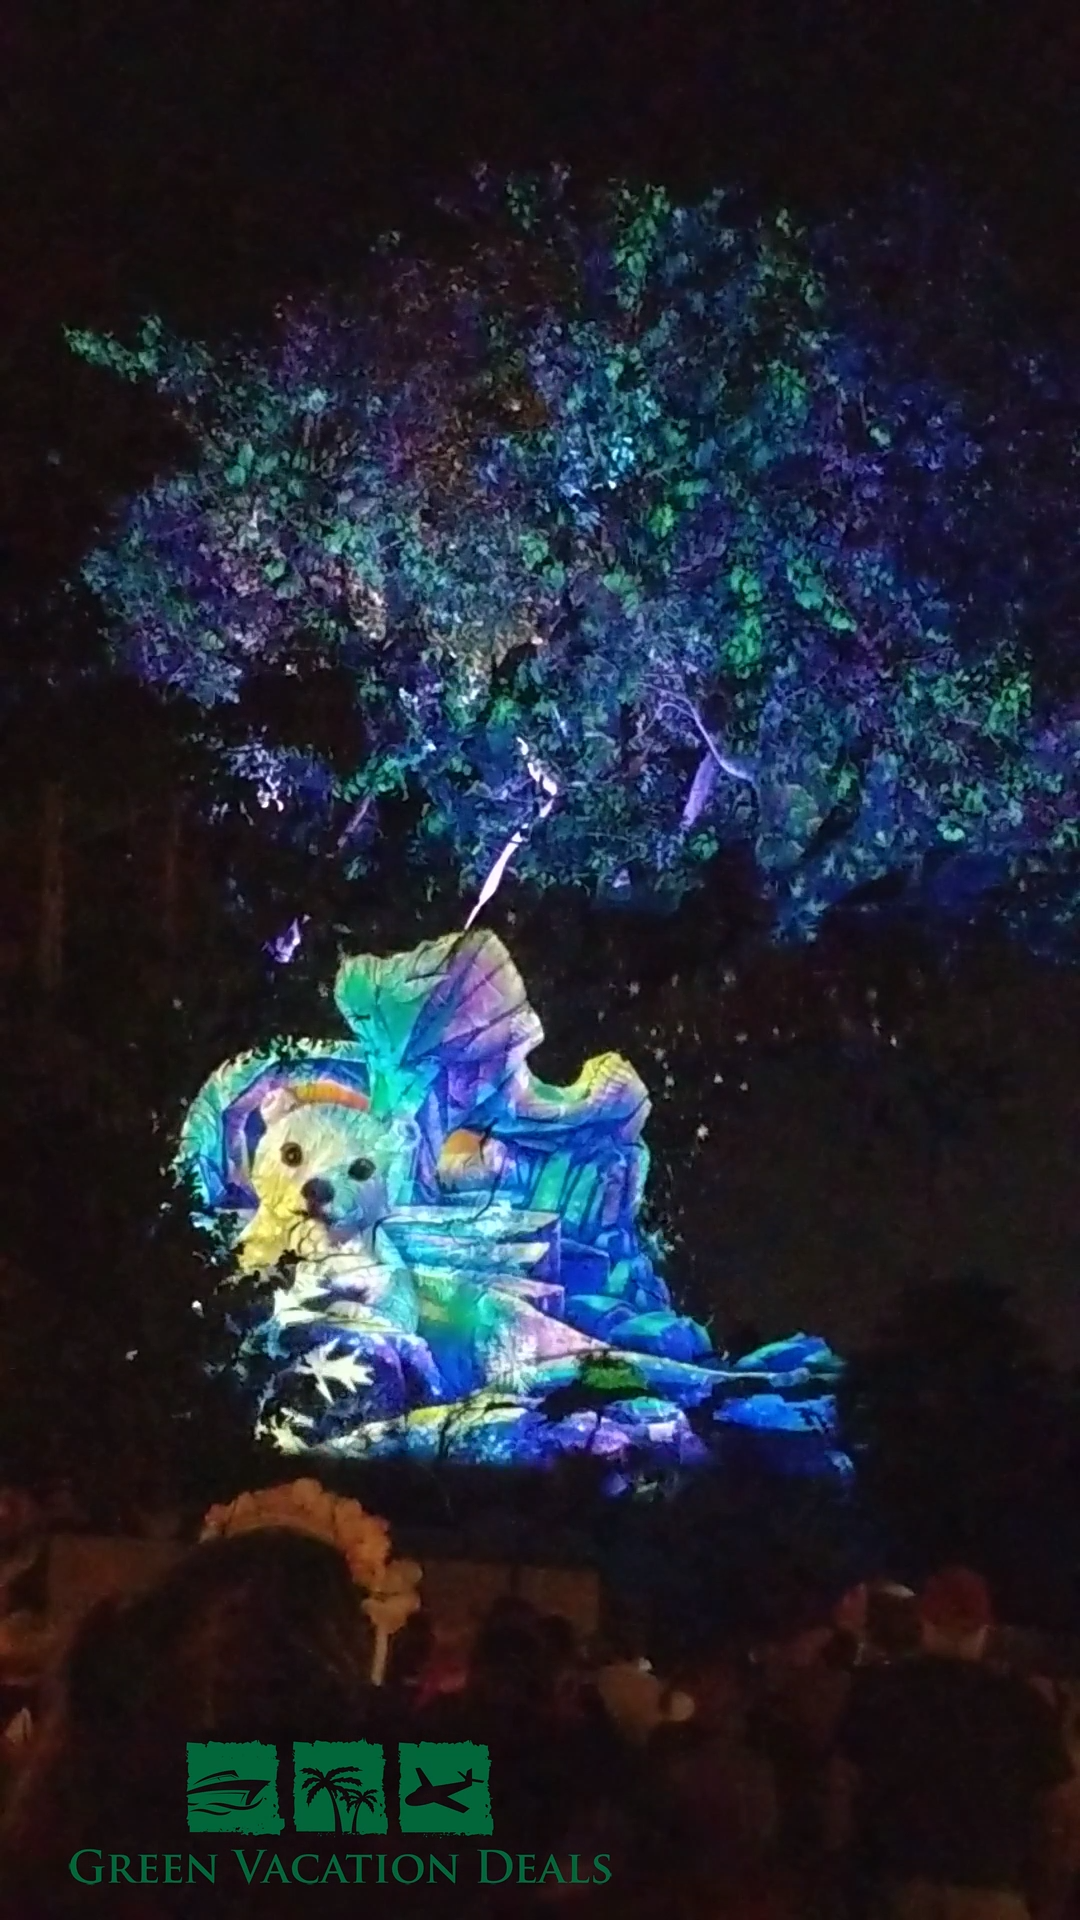 A new holiday event just debuted at Animal Kingdom theme park at Walt Disney World Resort in Orlando, Florida. We show you what's it like in our virtual tour! See the new Christmas decorations, performances, special character meet & greets in Dinoland USA, and the Tree of Life projections! #AnimalKingdom #DisneyWorld #WaltDisneyWorld #WDW #Christmas #DisneyChristmas #Orlando #Florida #themepark #DonaldDuck #ScroogeMcDuck #DuckTales #DinolandUSA #Christmas2019 #Disneyparks #familytravel #holidays